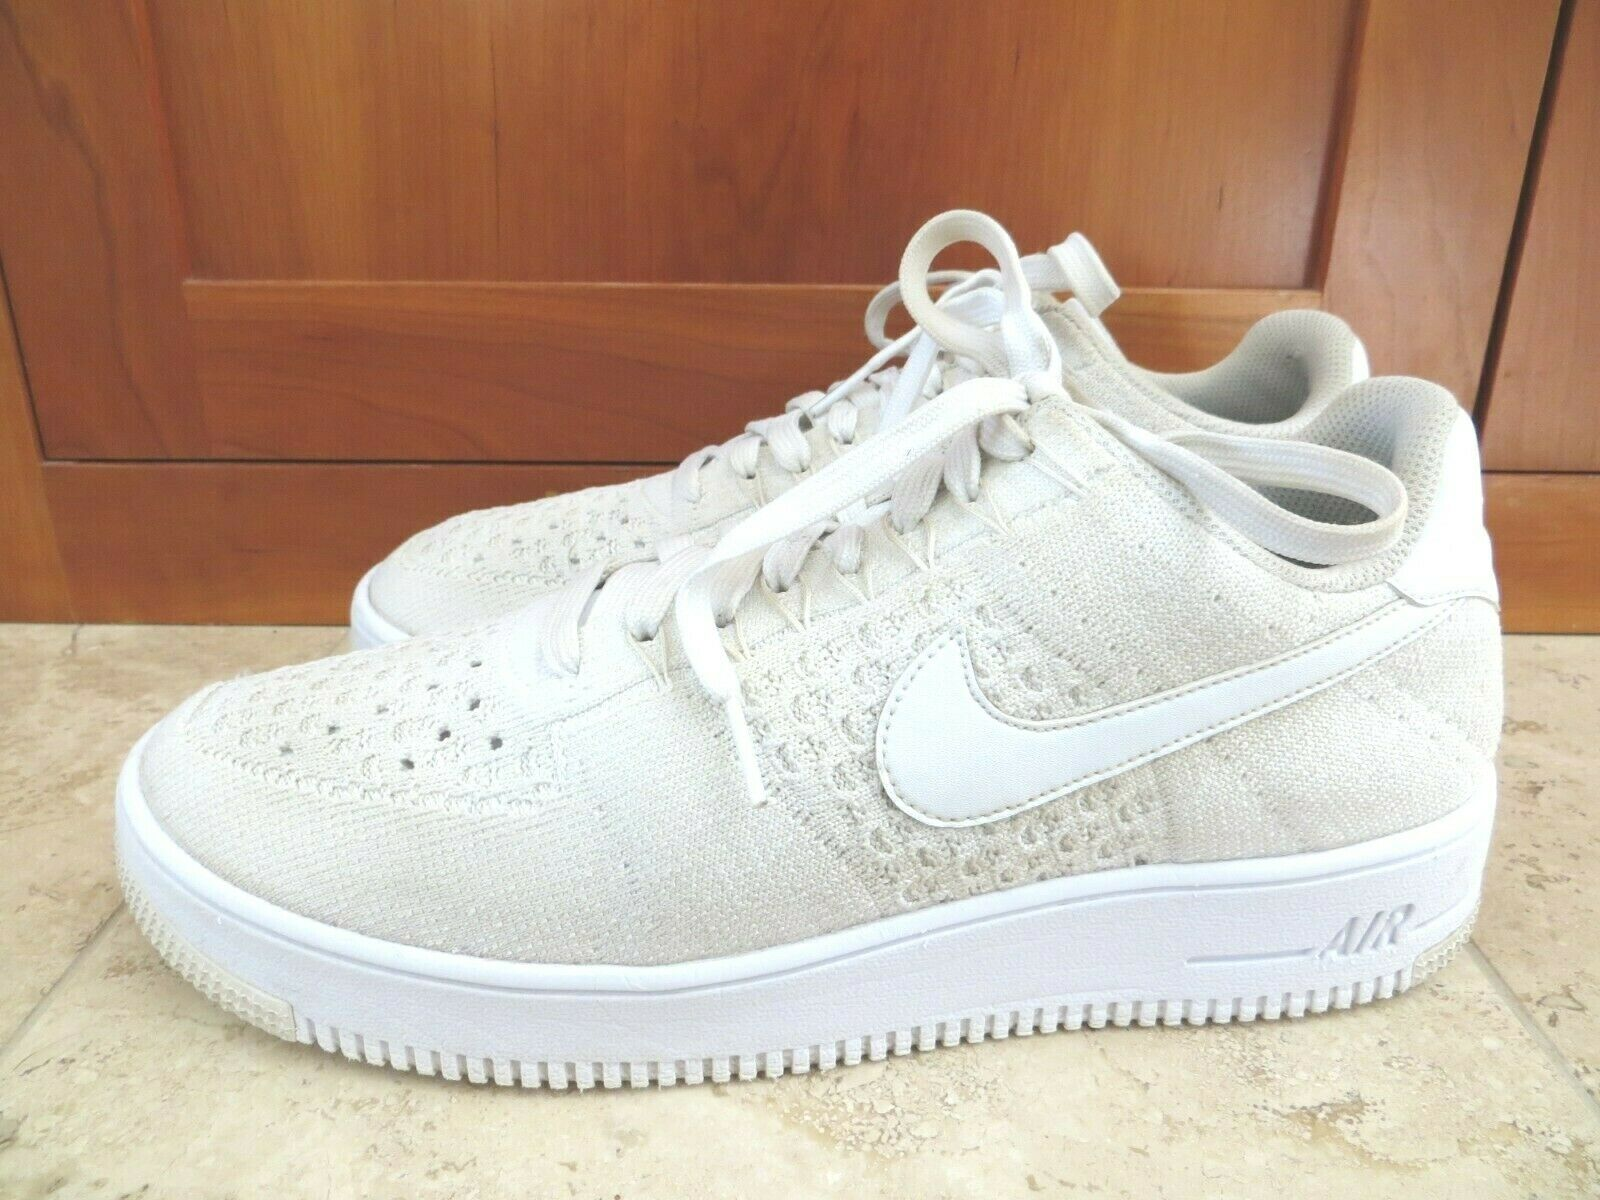 Nike Af1 Ultra Flyknit Mid Sail Pale